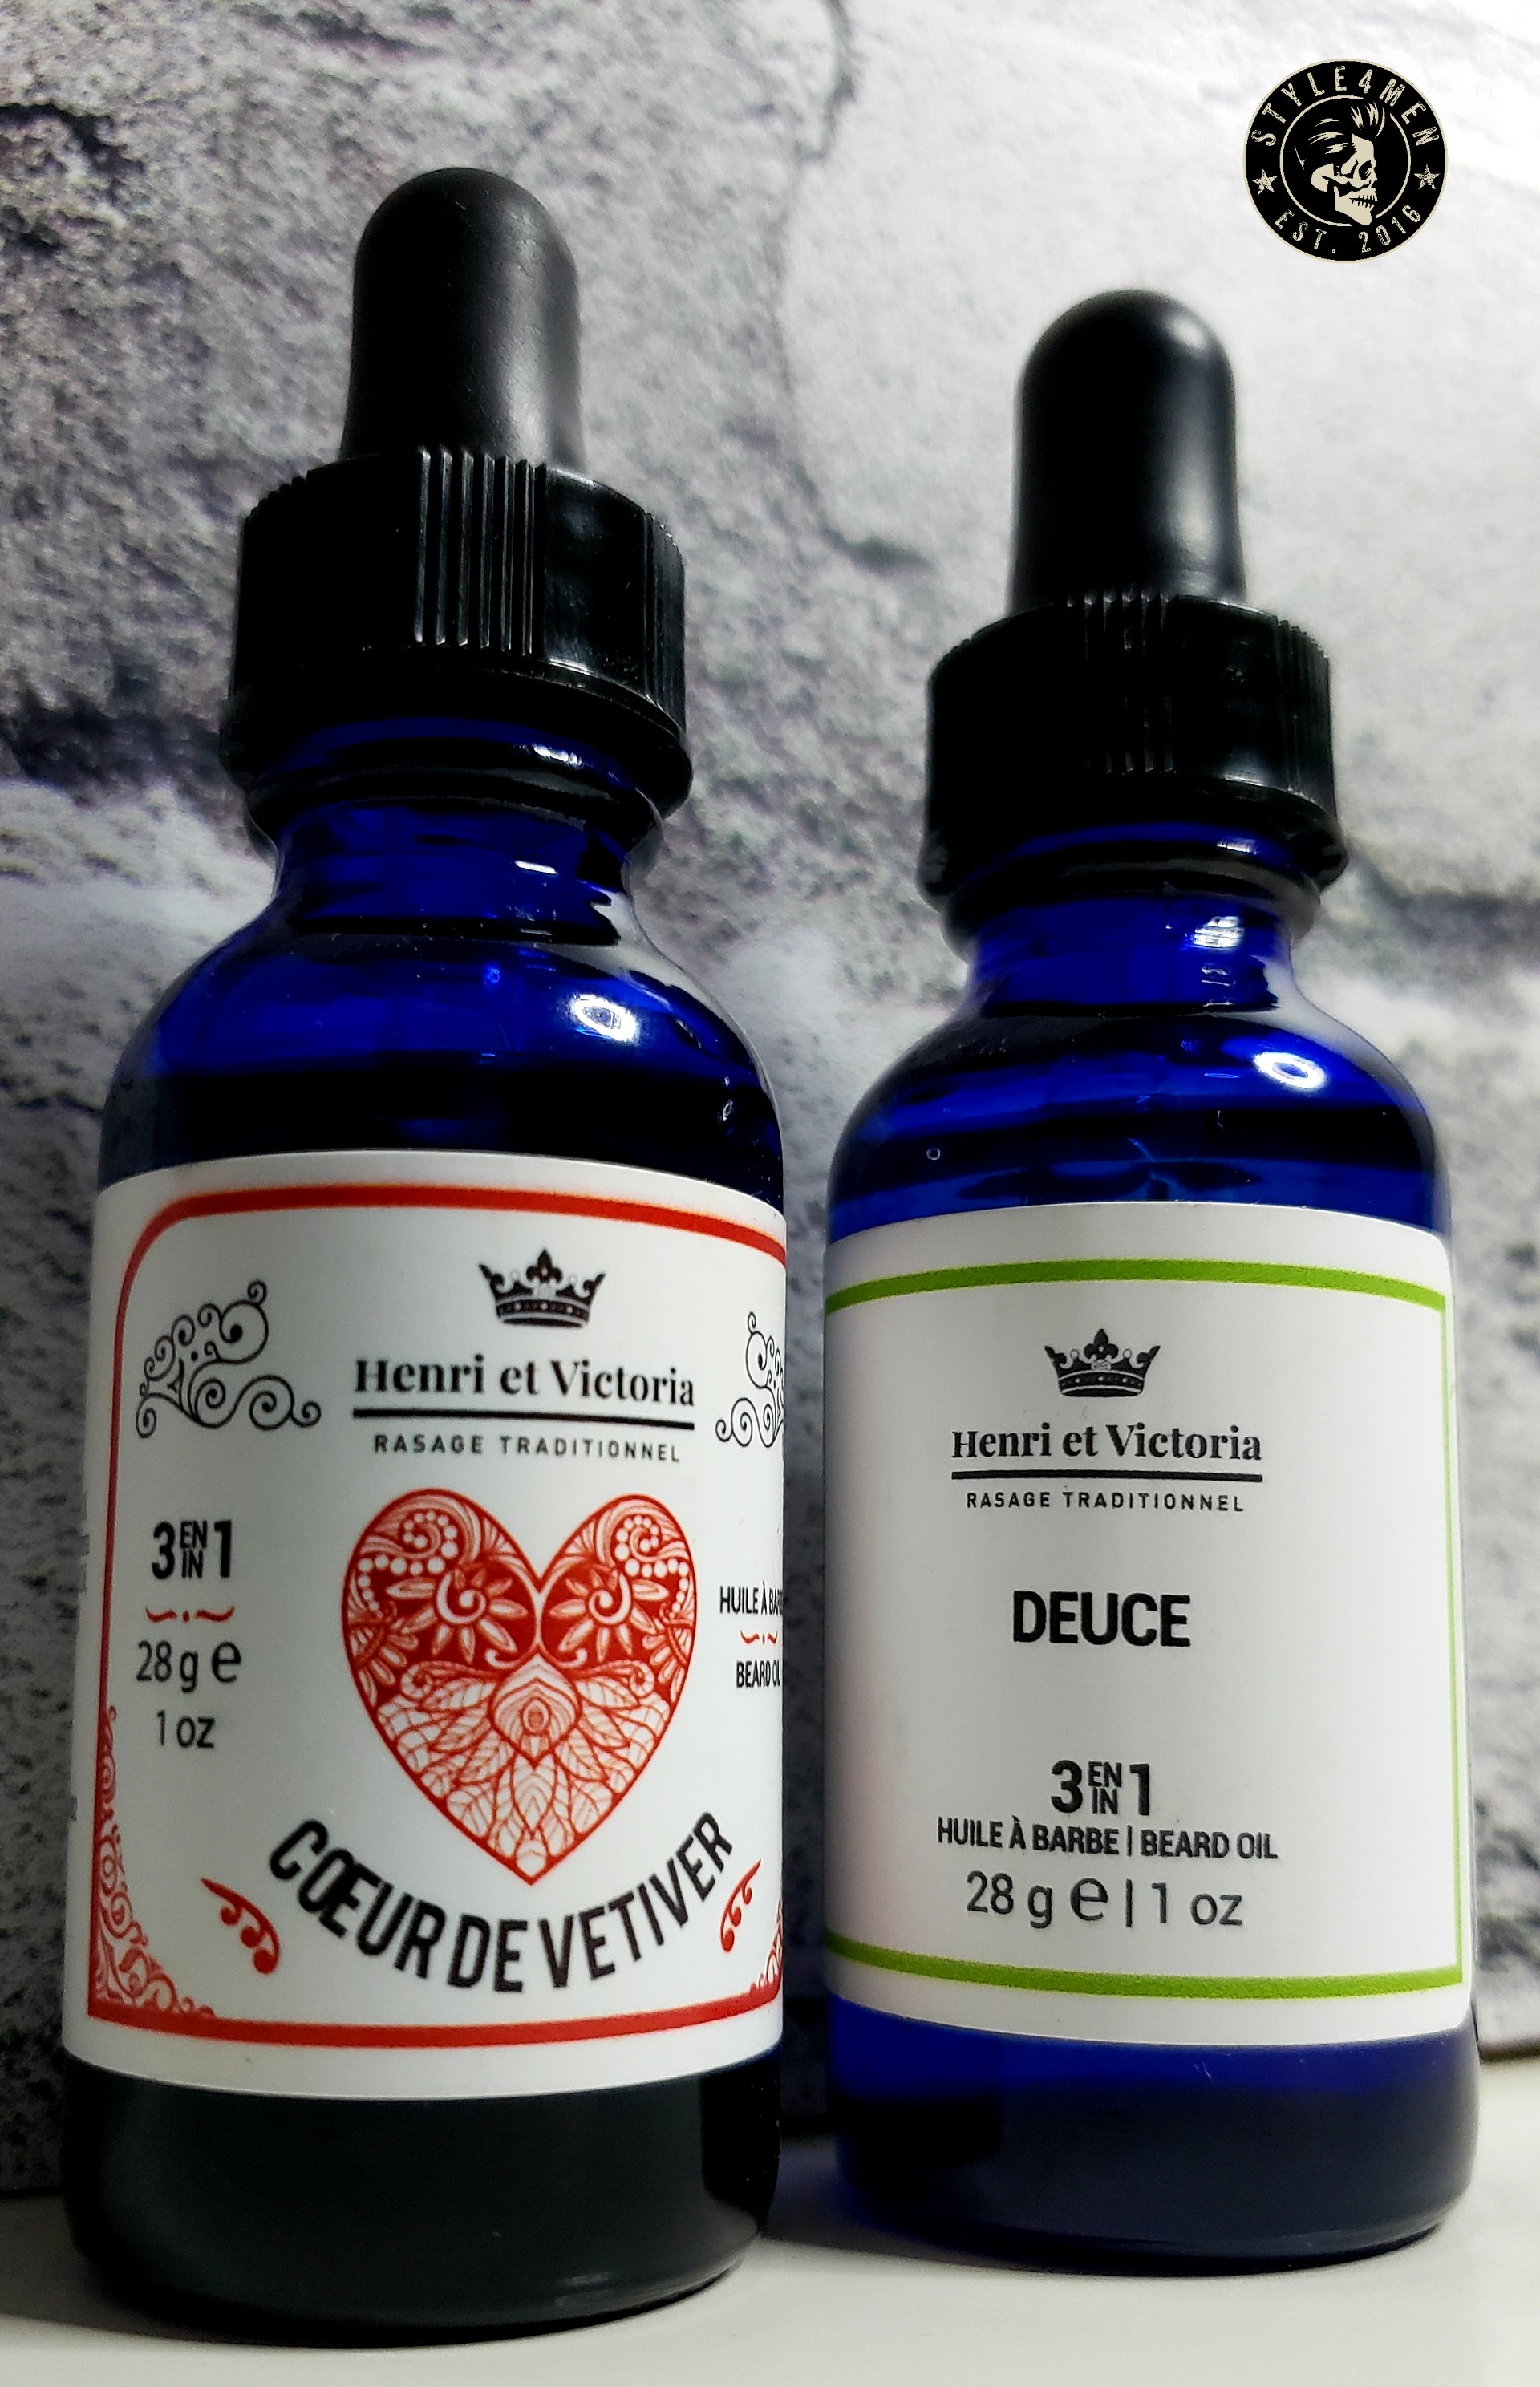 The smooth beard oils by Henri et Victoria